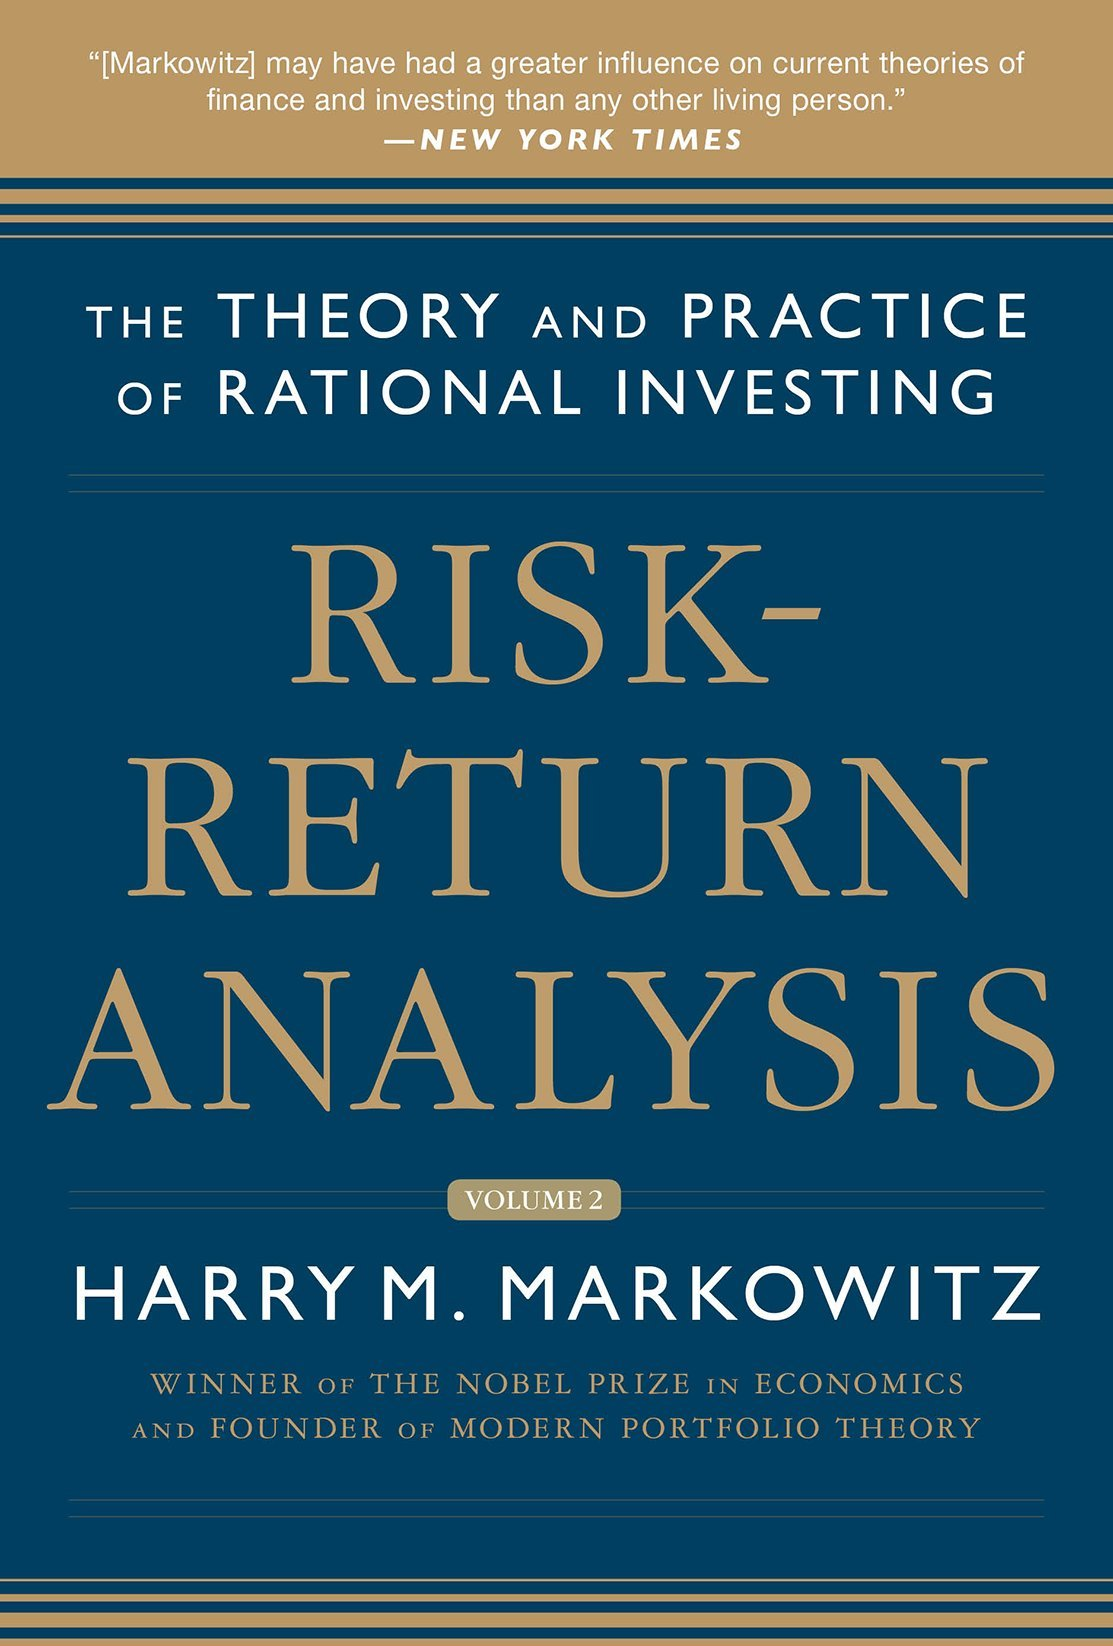 Risk-Return Analysis, Volume 2: The Theory and Practice of Rational Investing